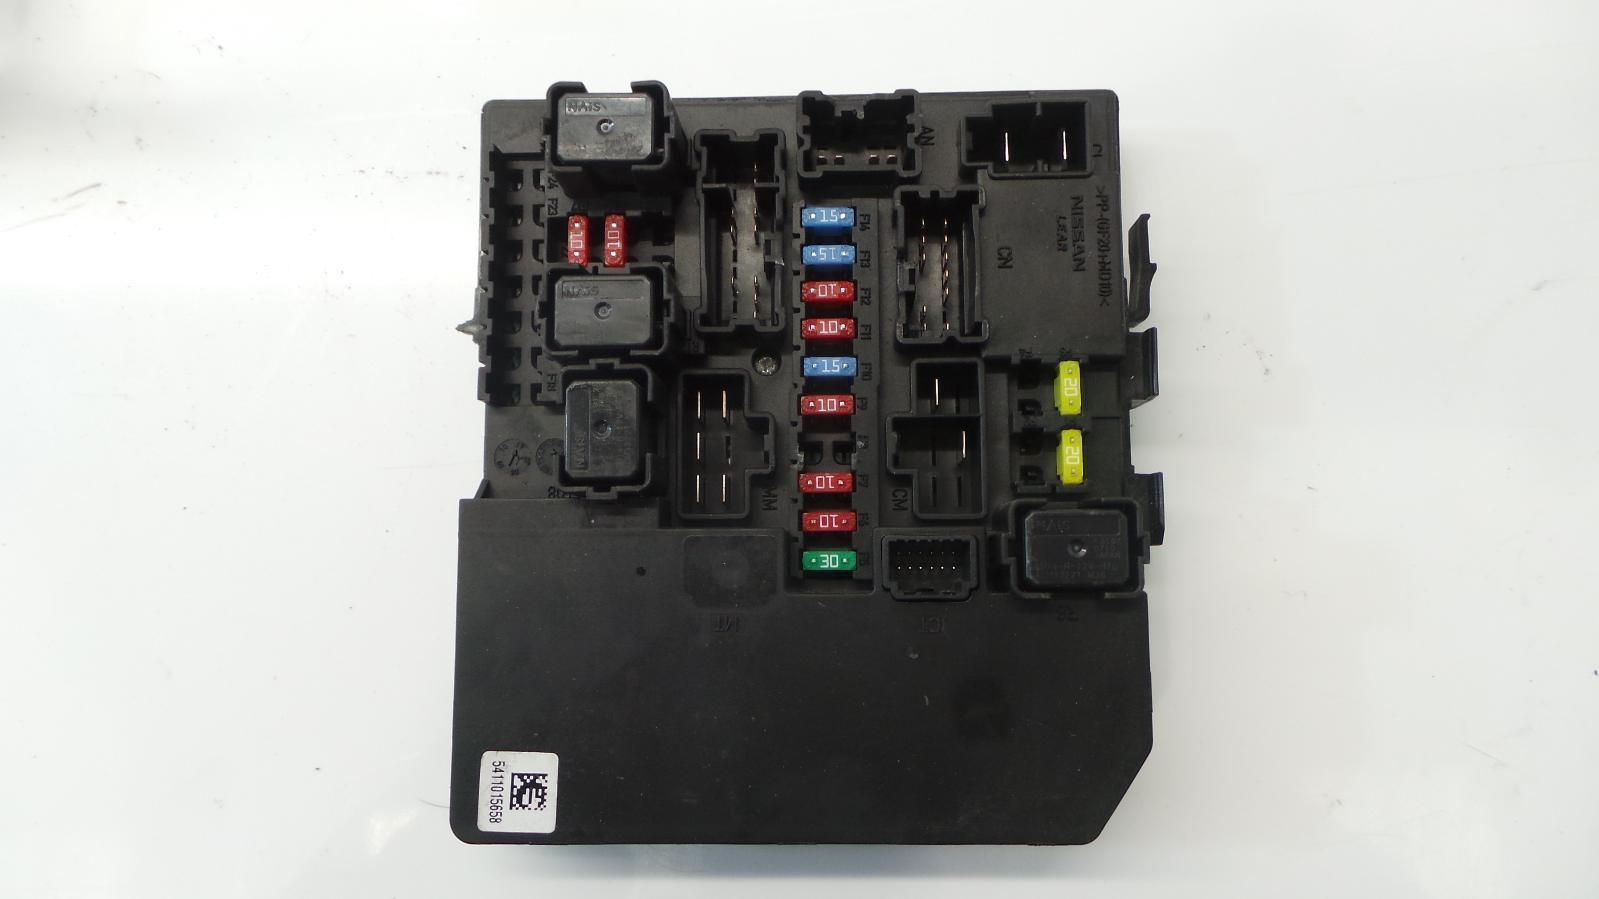 ... 284b7 Jx50a Rh Renault Spares Co Uk On Nissan Altima 2005 Fuse List For  Nissan Nv200 Fuse Box #7 At 2003 Nissan Xterra Fuse Box 2011 Nissan Maxima  ...